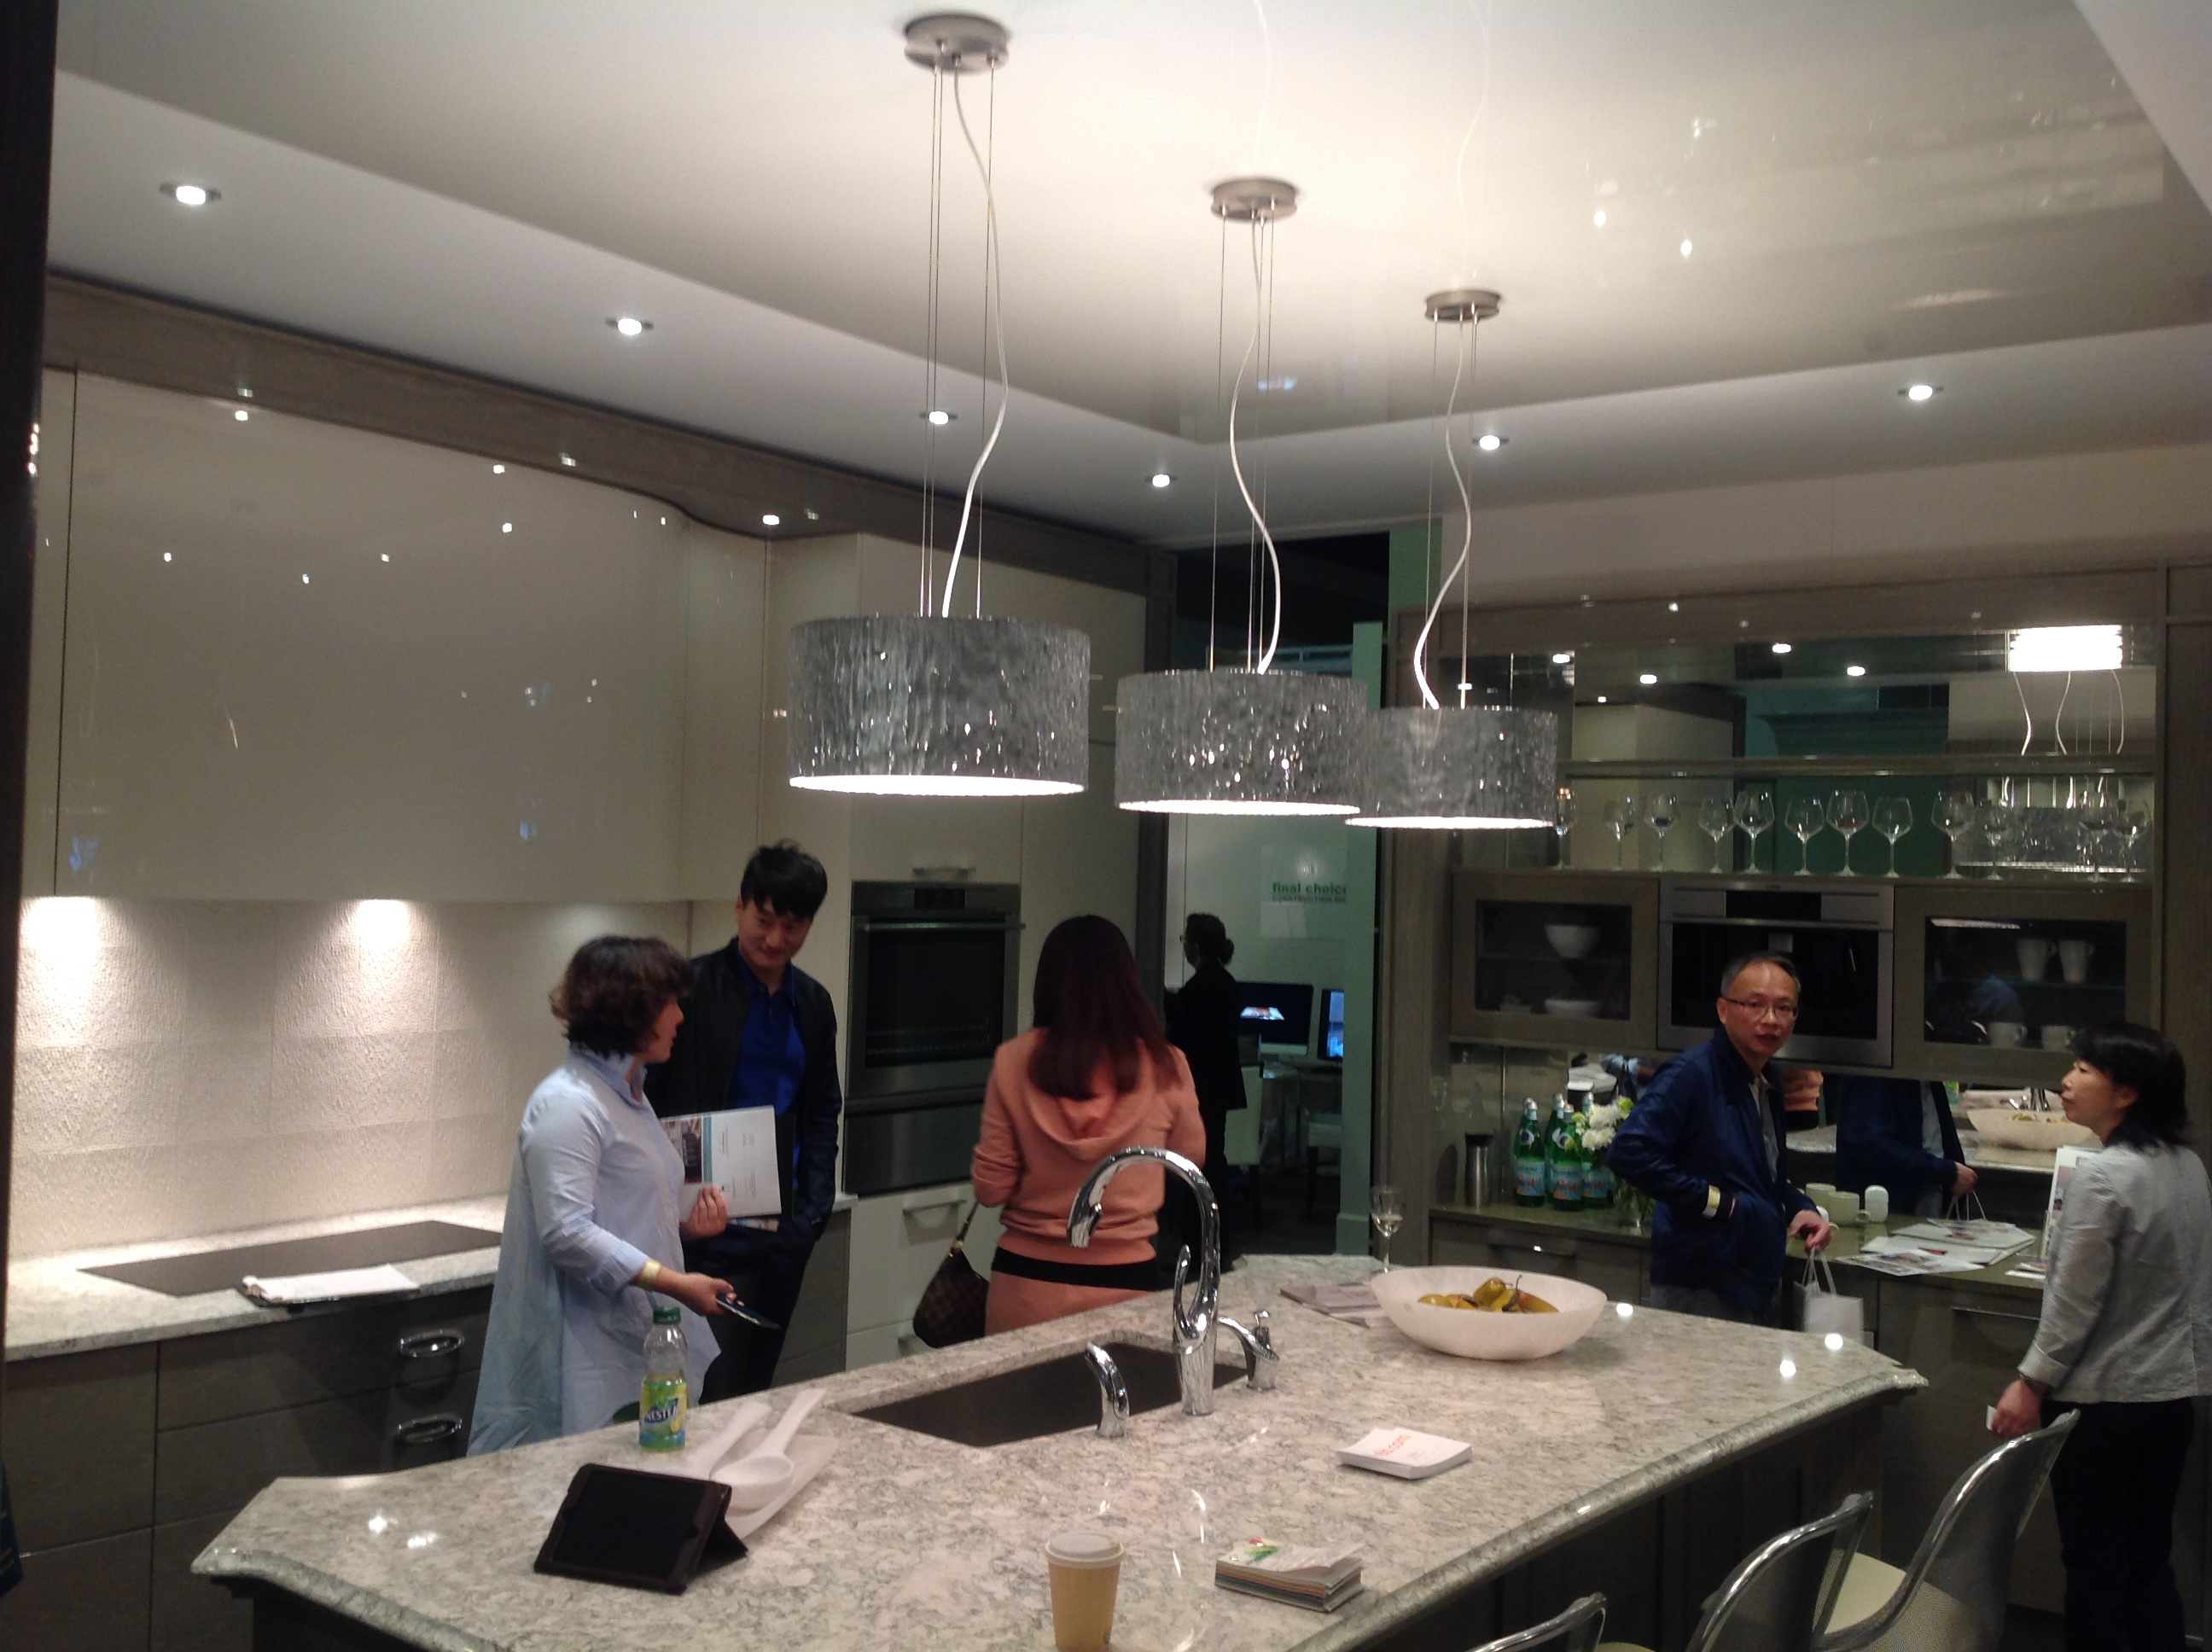 Vancouver Was Recently Home To The 2015 Luxury Home U0026 Design Show.  Attendees Were Thrilled To Find Themselves Amongst Some Of The Countryu0027s  Premier ...